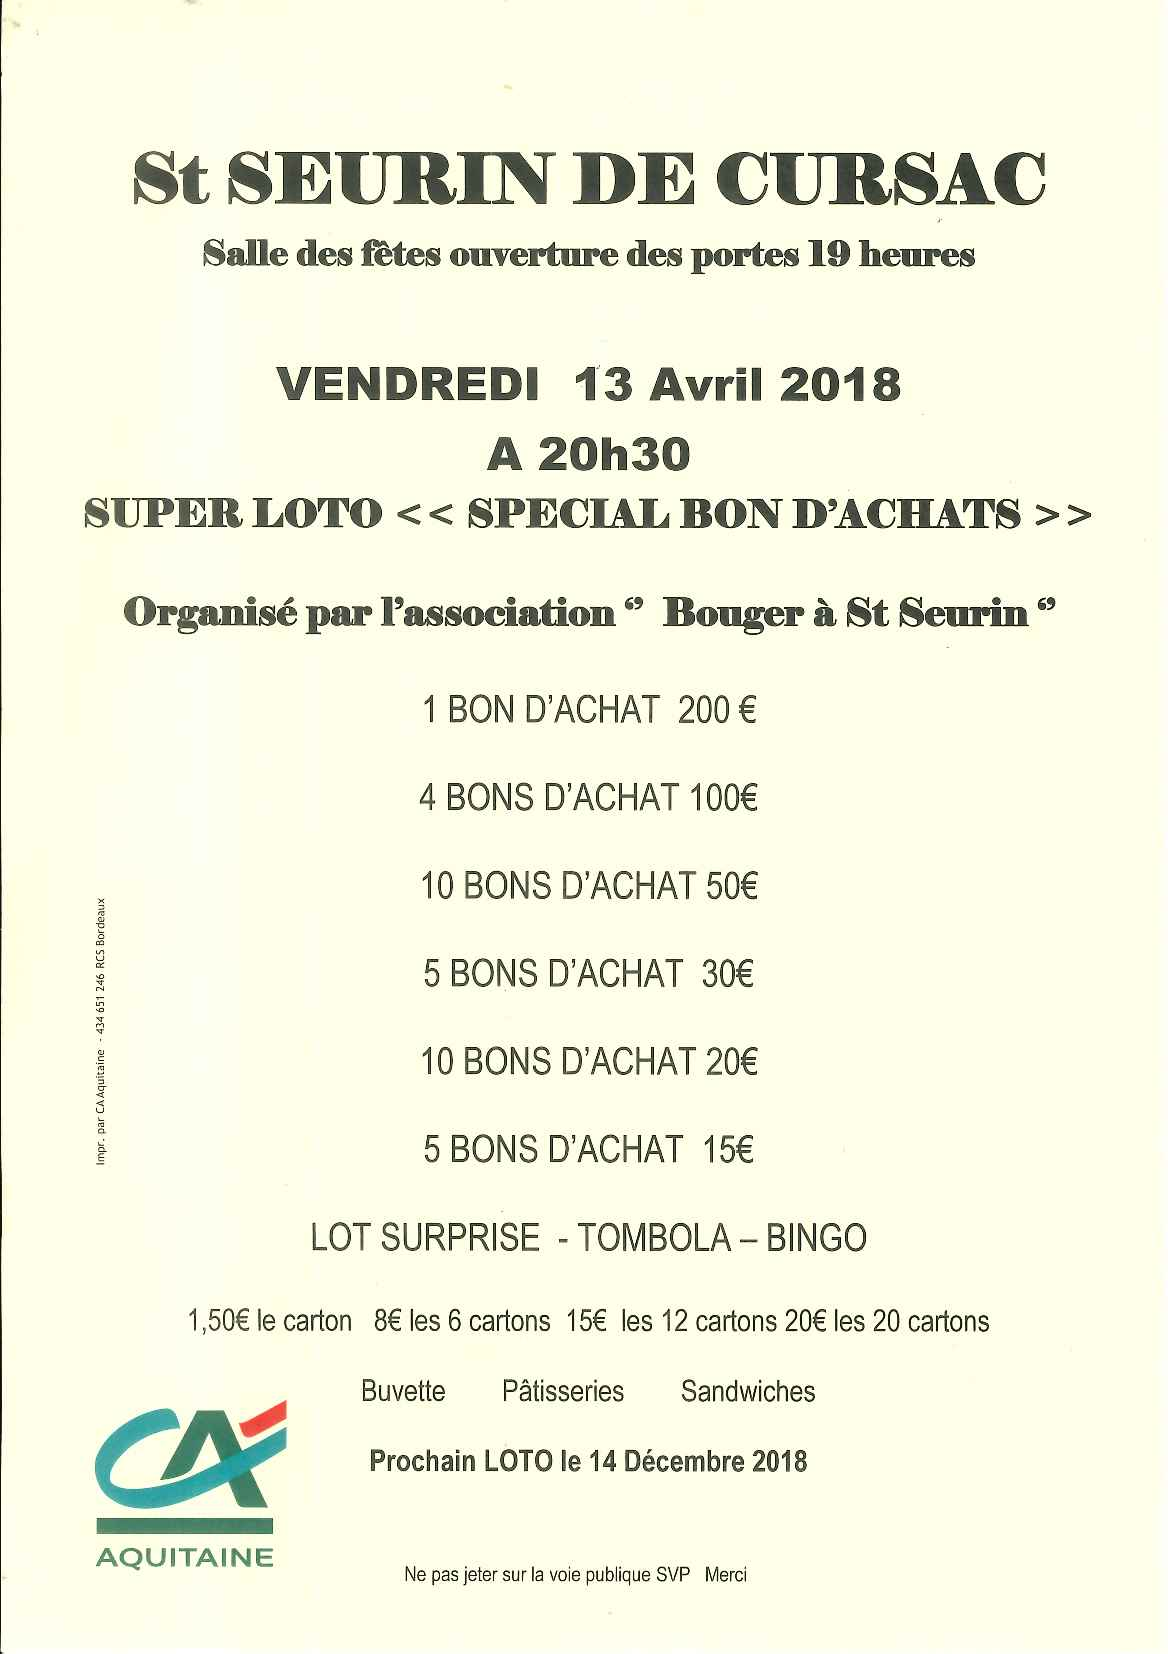 Association Bouger à St Seurin - Loto